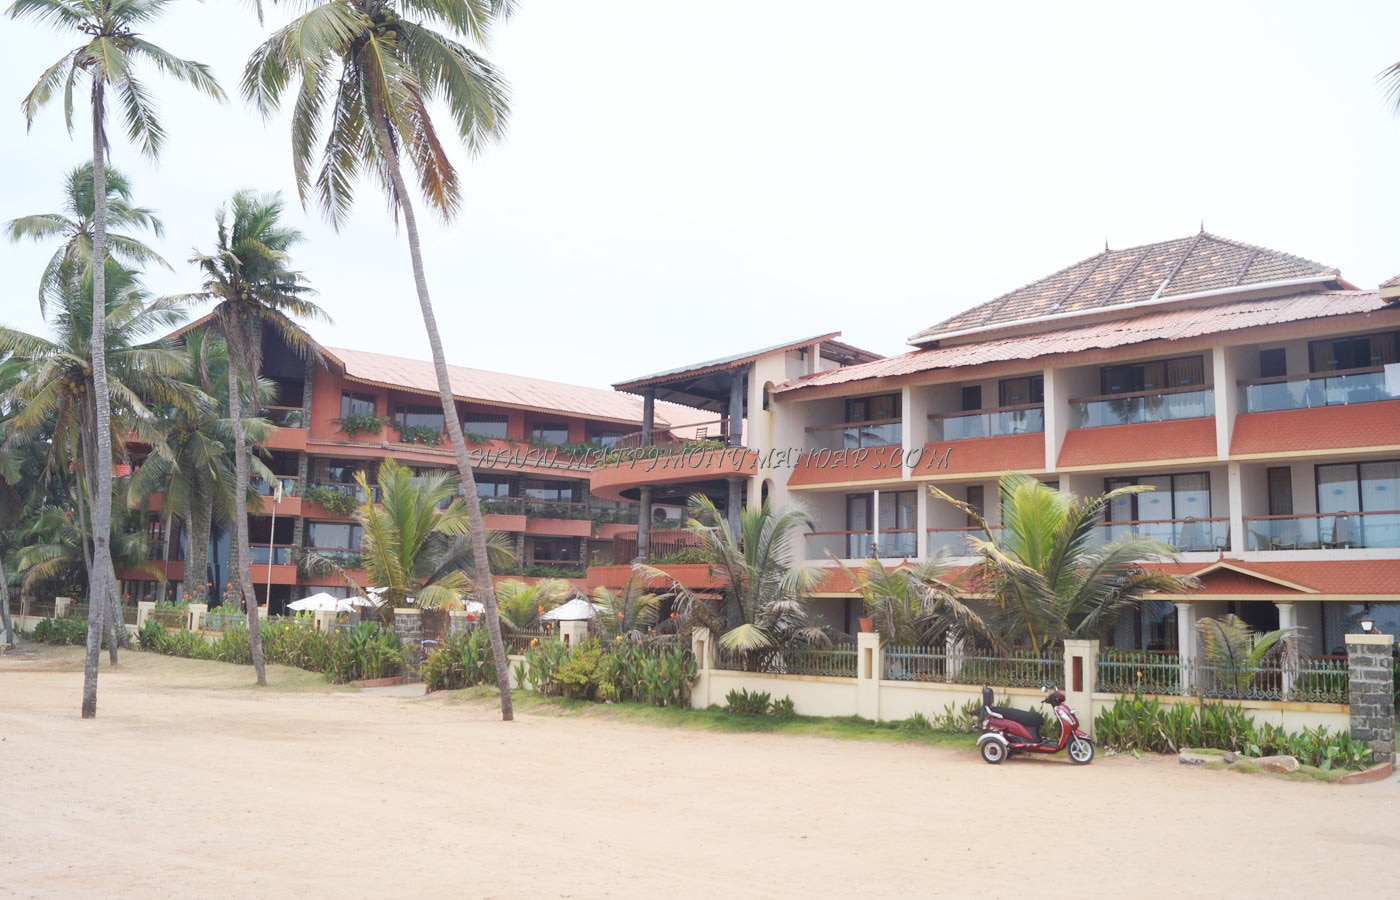 Find the availability of the Uday Samudra Leisure Beh Hotel - Beh Venue in Kovalam, Trivandrum and avail special offers